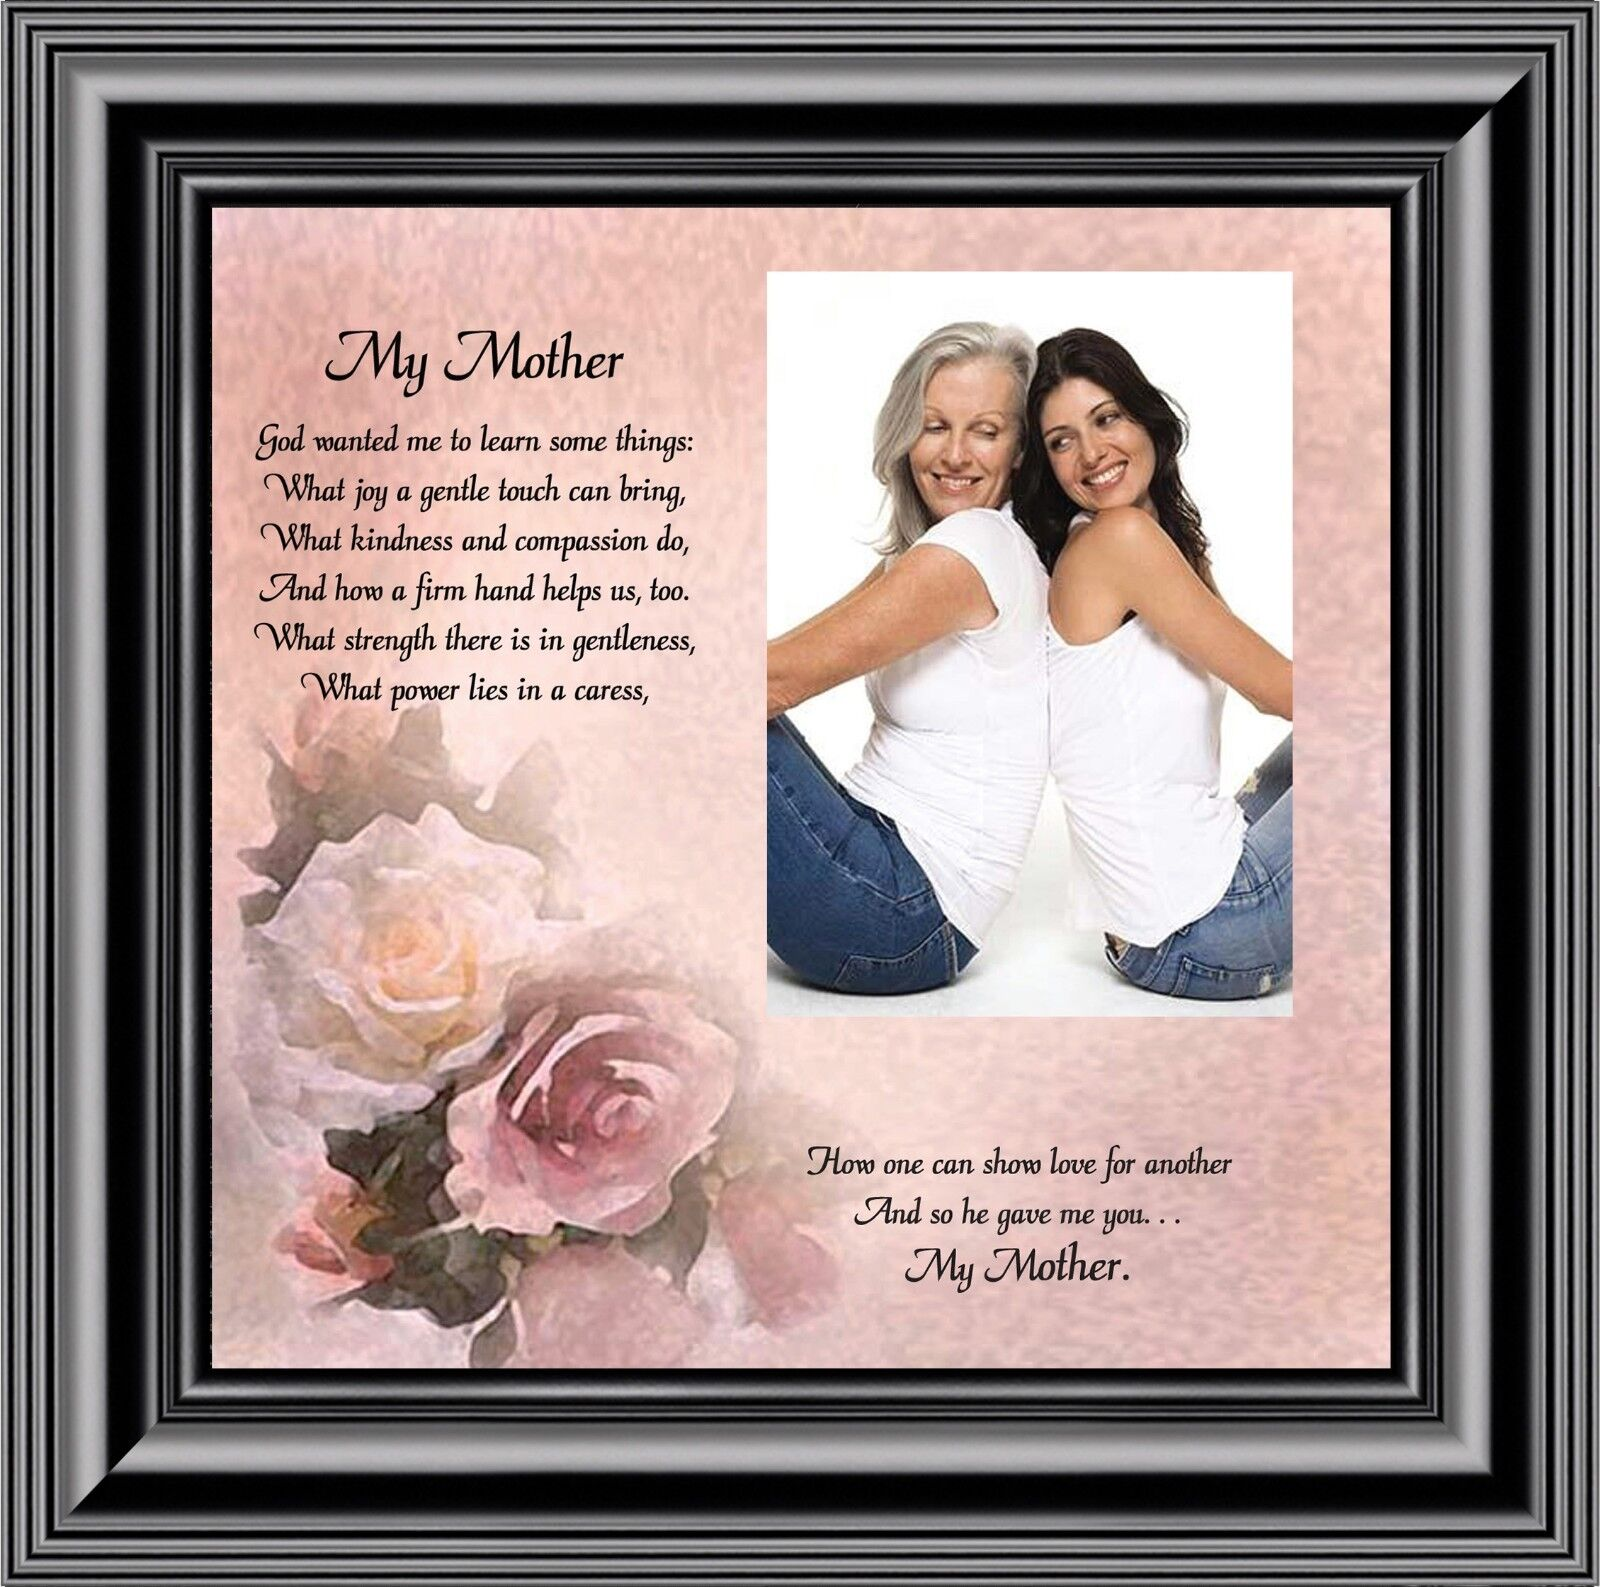 My Mother Personalized Picture Frame Gift From Daughter To Mother